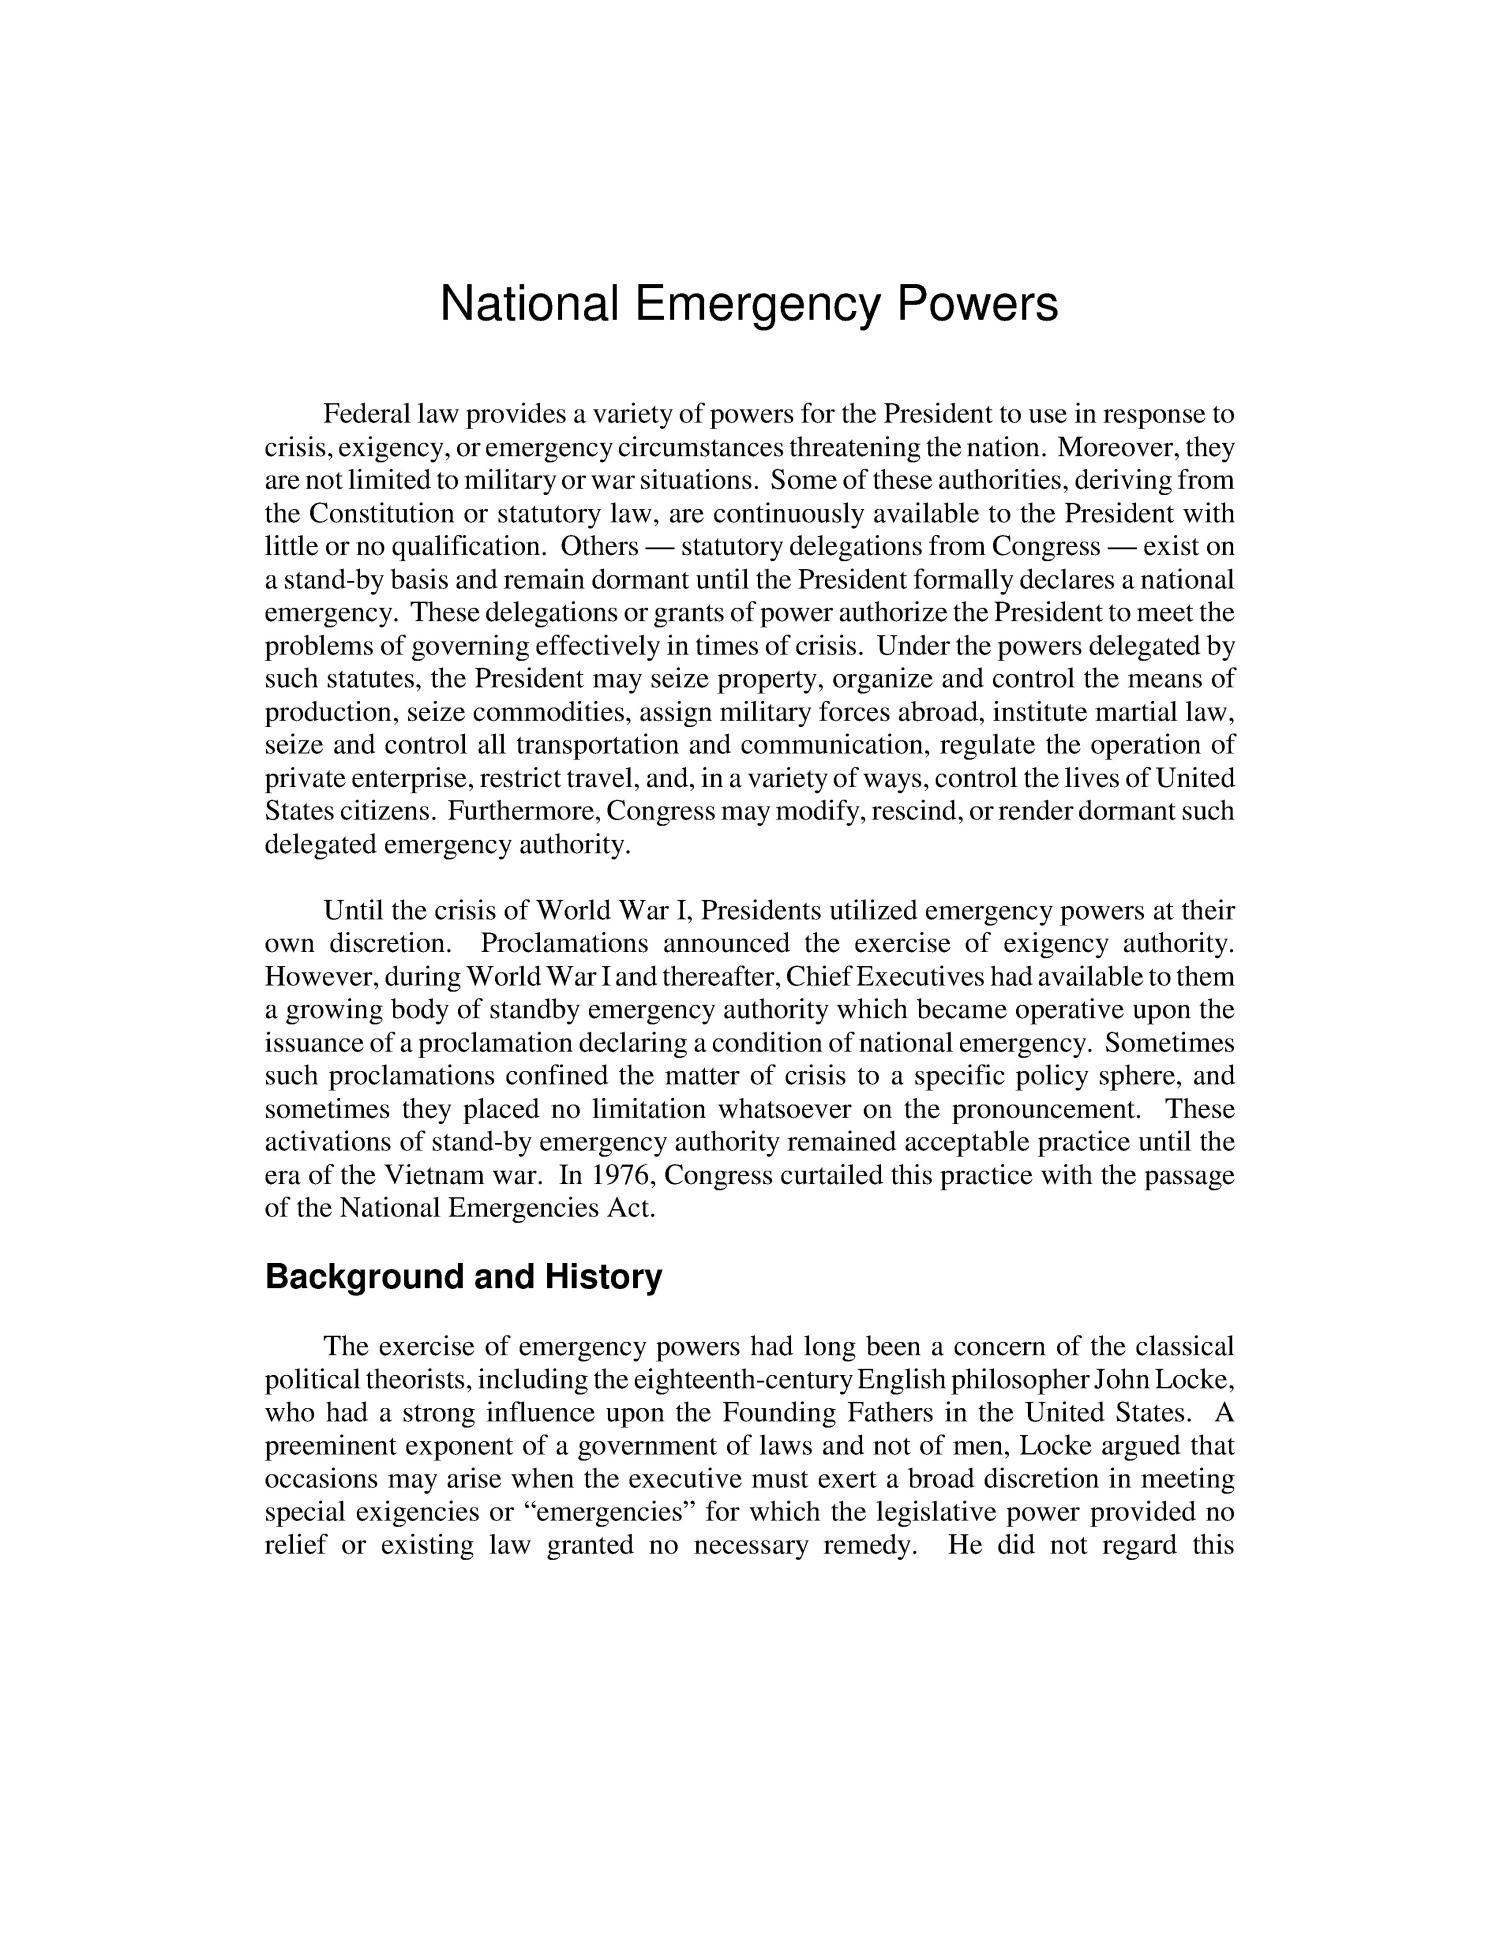 National Emergency Powers                                                                                                      [Sequence #]: 4 of 25